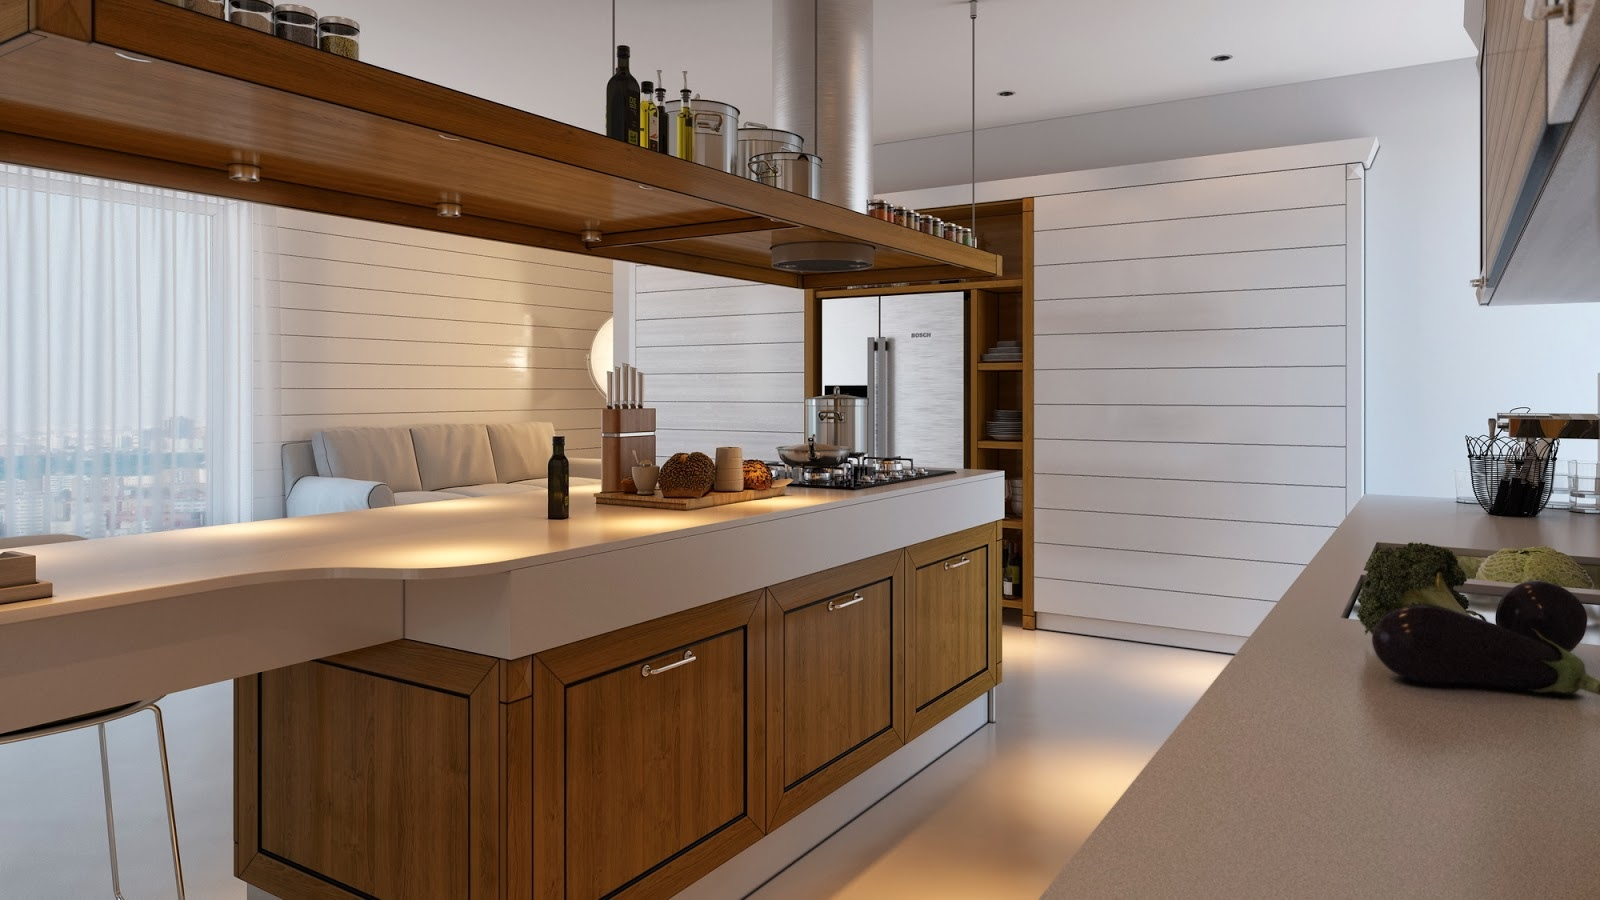 Minimalist Kitchen Design 2 Minimalist Kitchen Design That Will Stunning You By